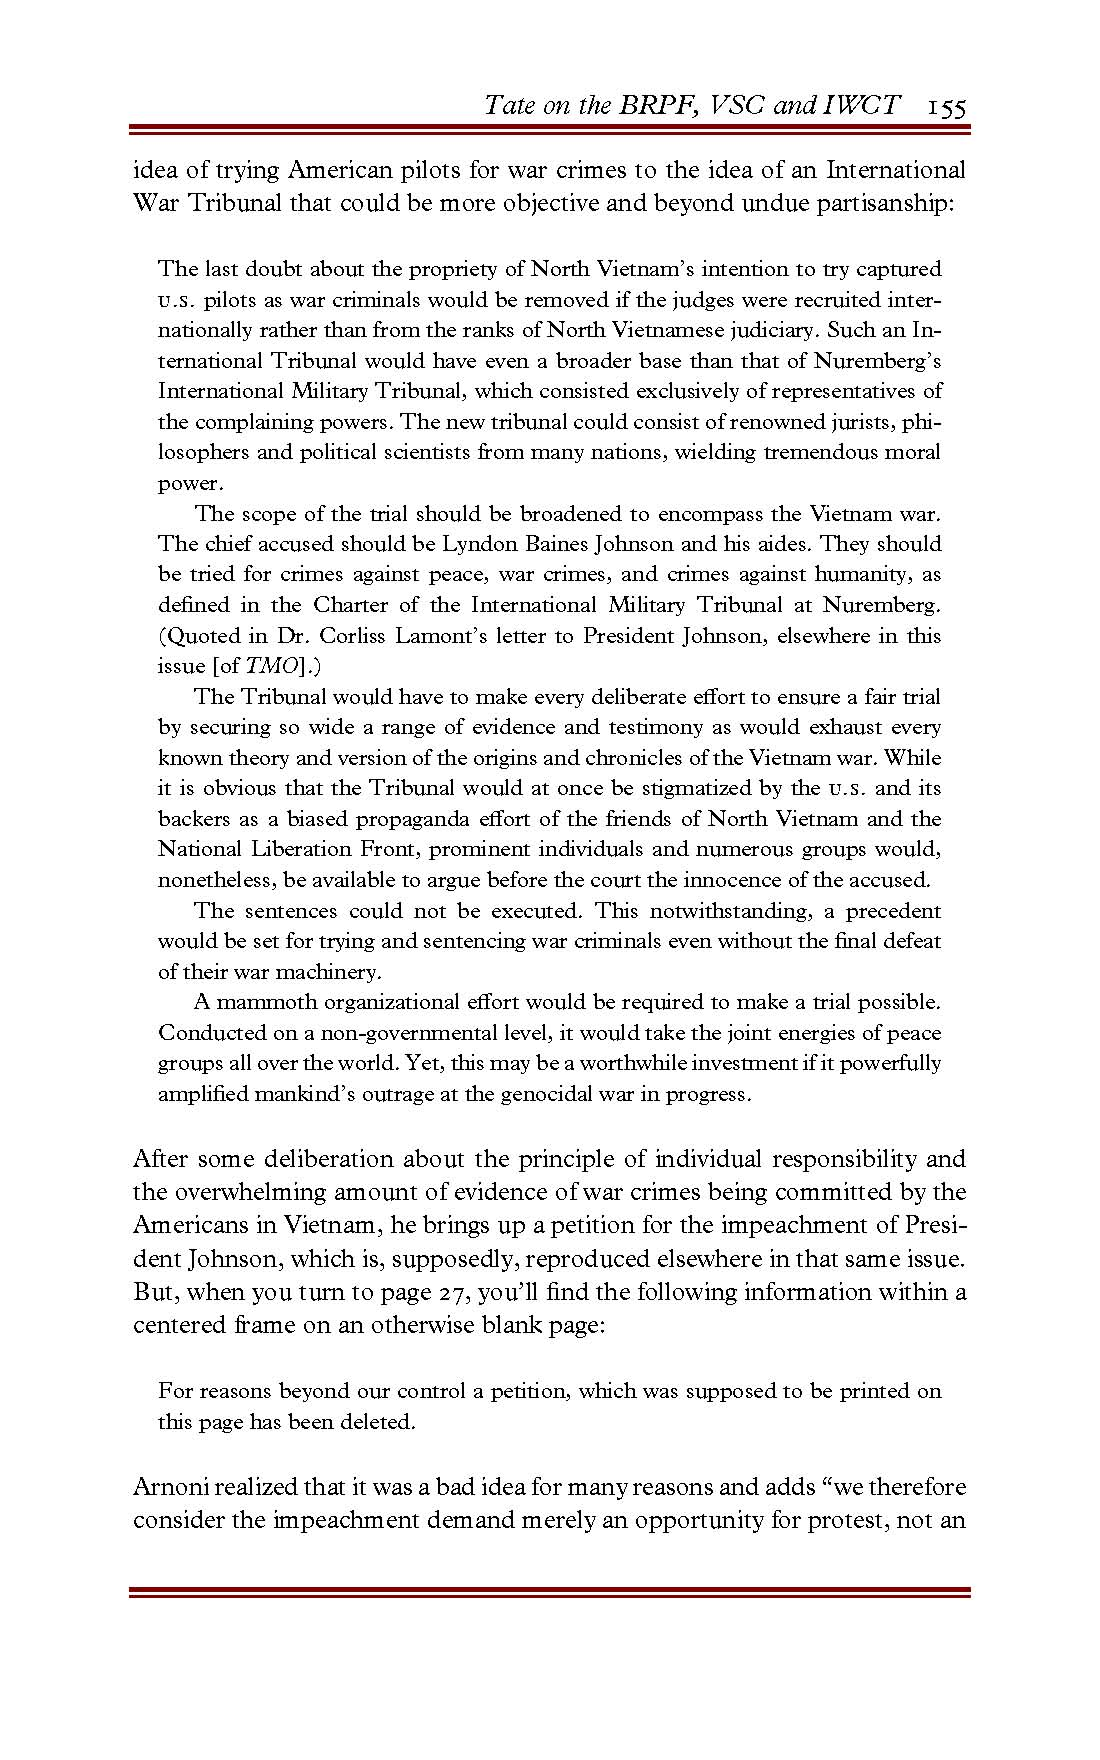 Anderson-- Pages from RJ 3402 050 red-5 (2)-1_Page_21